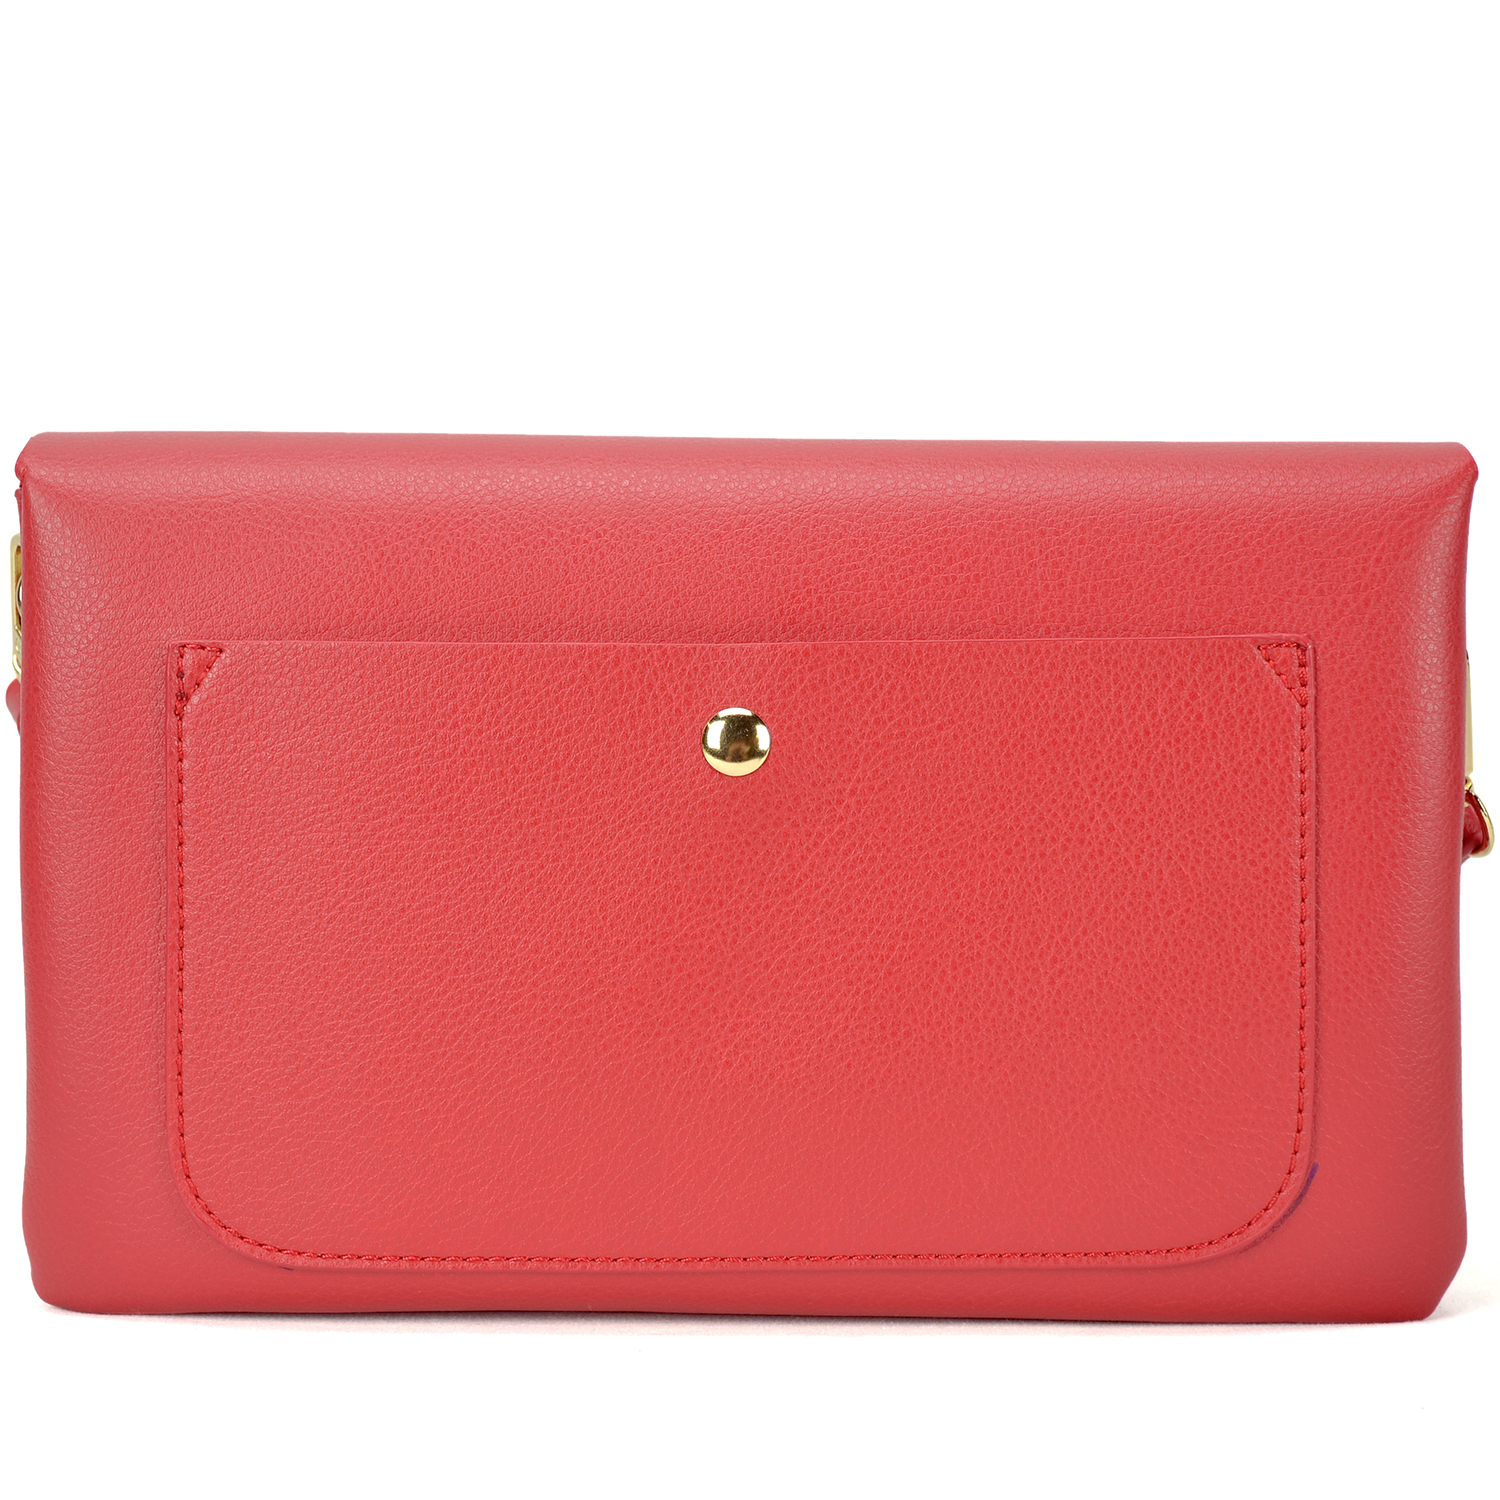 All-In-One Crossbody/ Messenger Clutch Bag with Front Button Snap